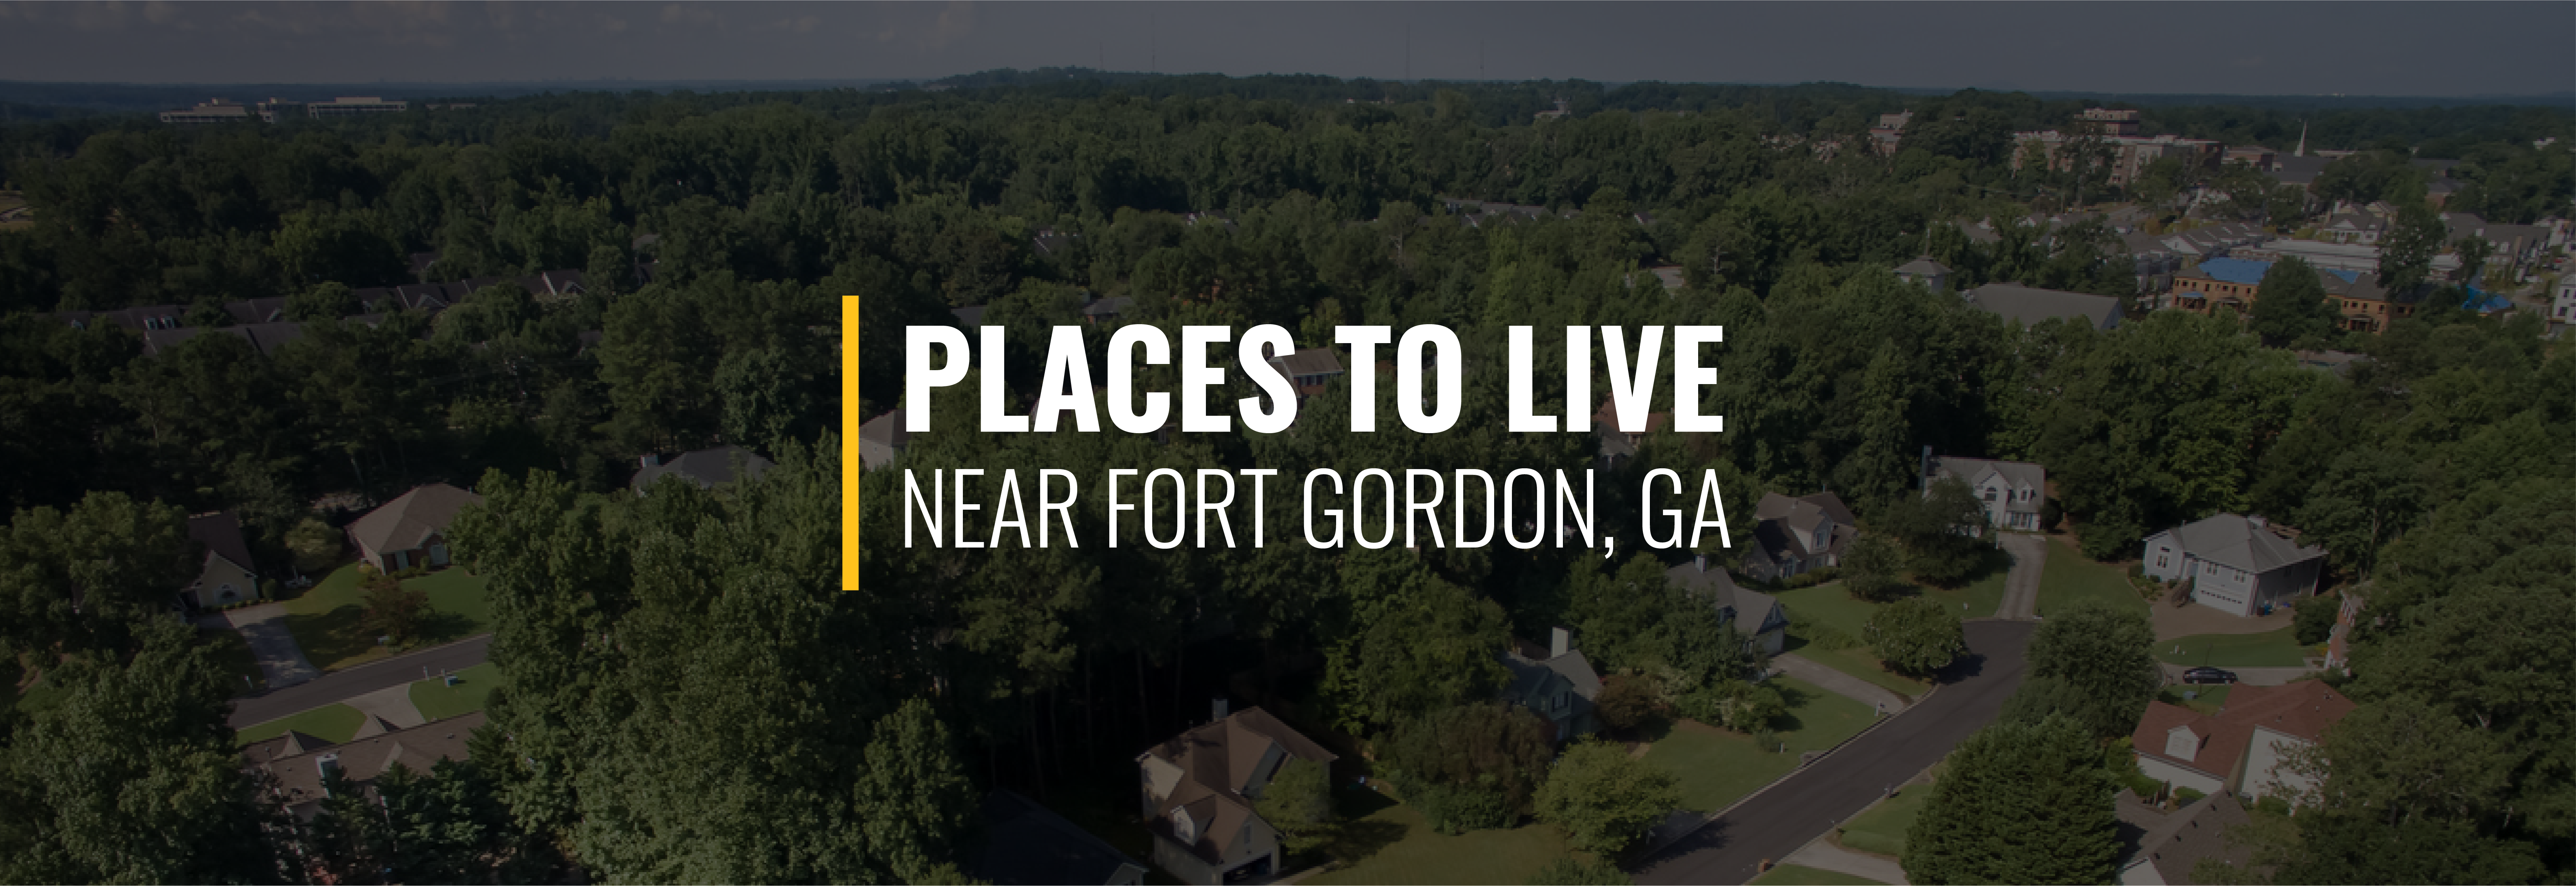 Places to Live Near Fort Gordon